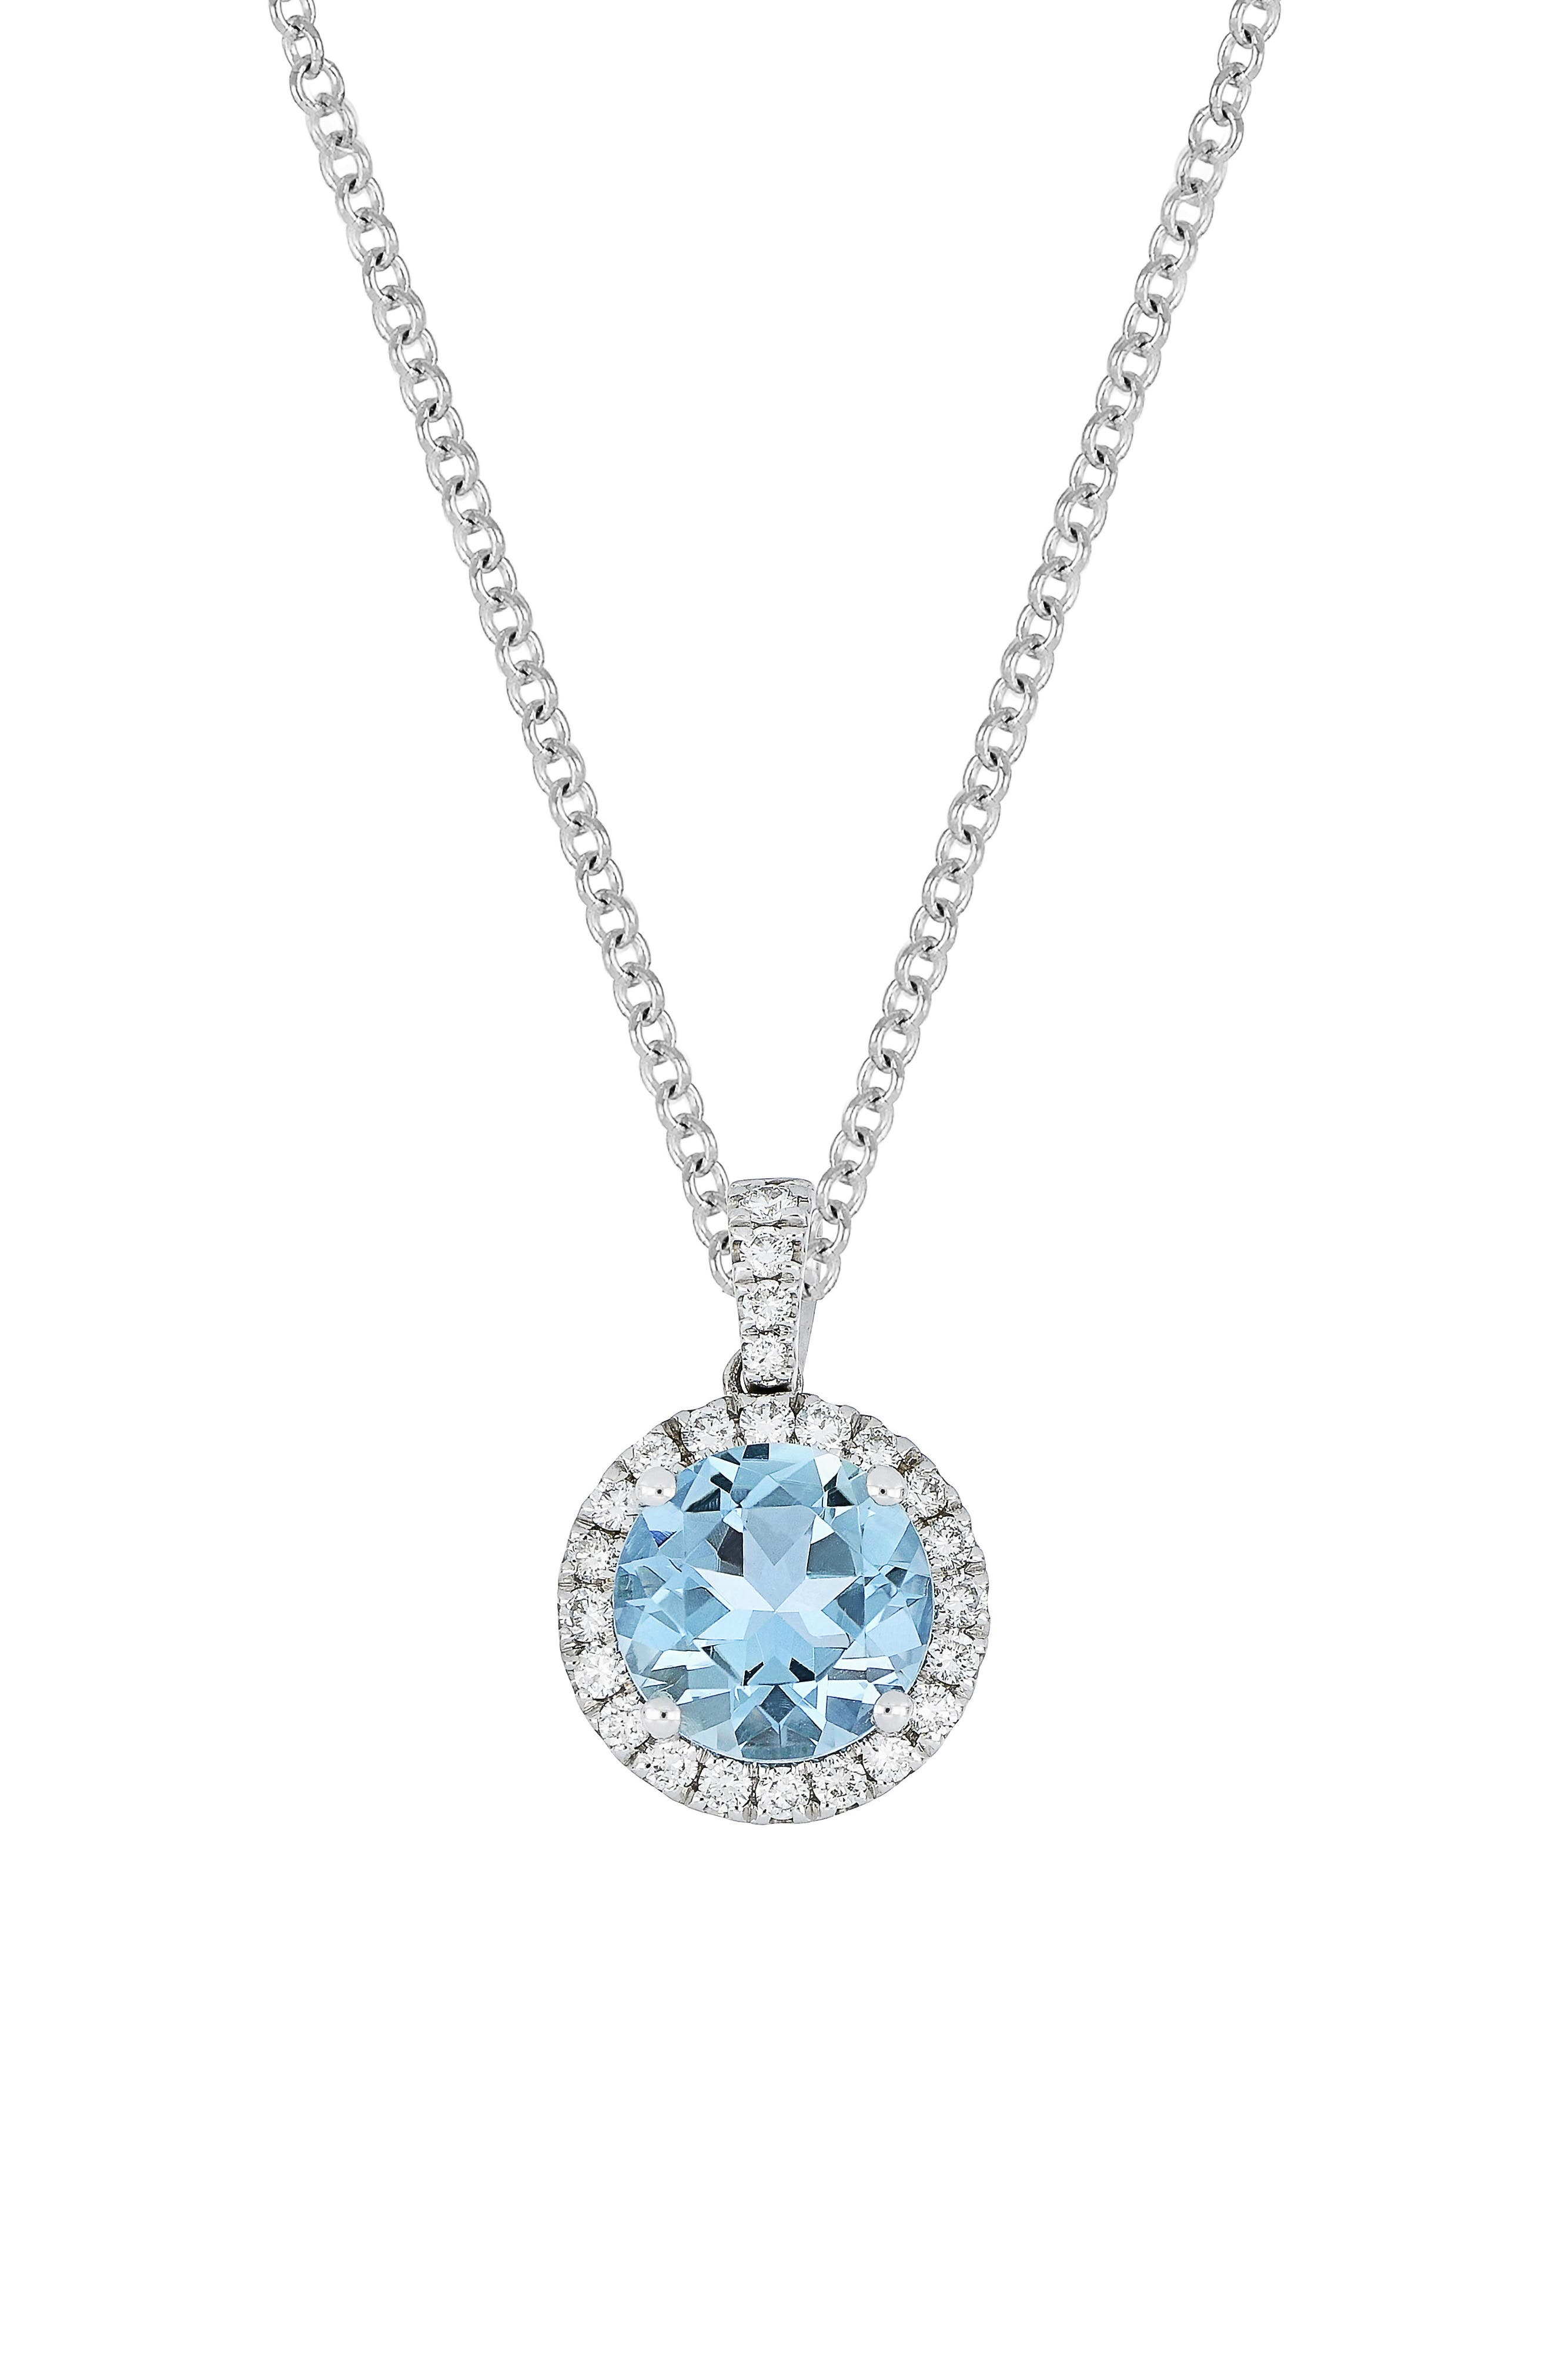 Round Aquamarine & Diamond Pendant Necklace,                             Main thumbnail 1, color,                             White Gold